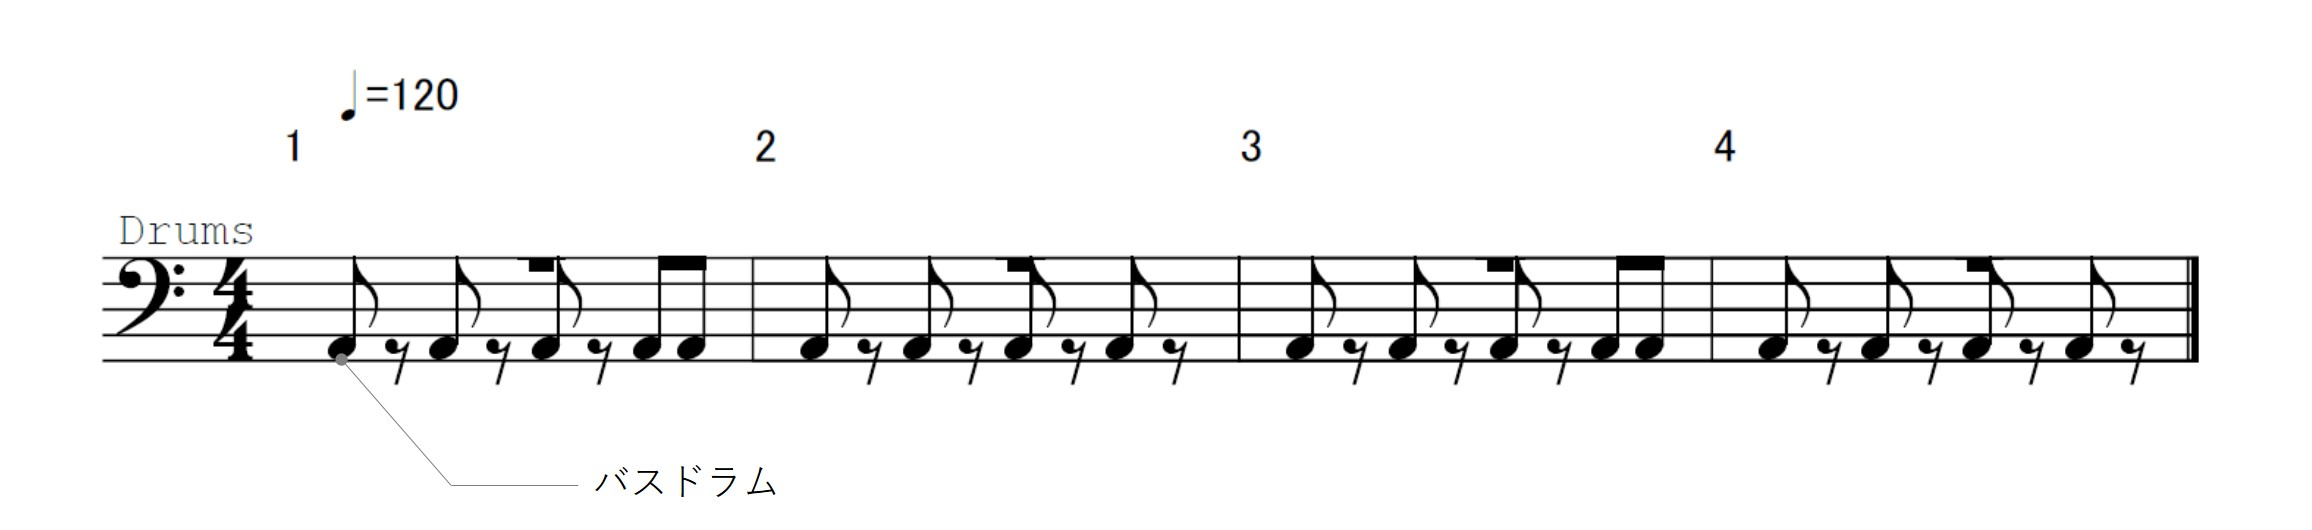 eight beat sample of voice percussion using the bass drum